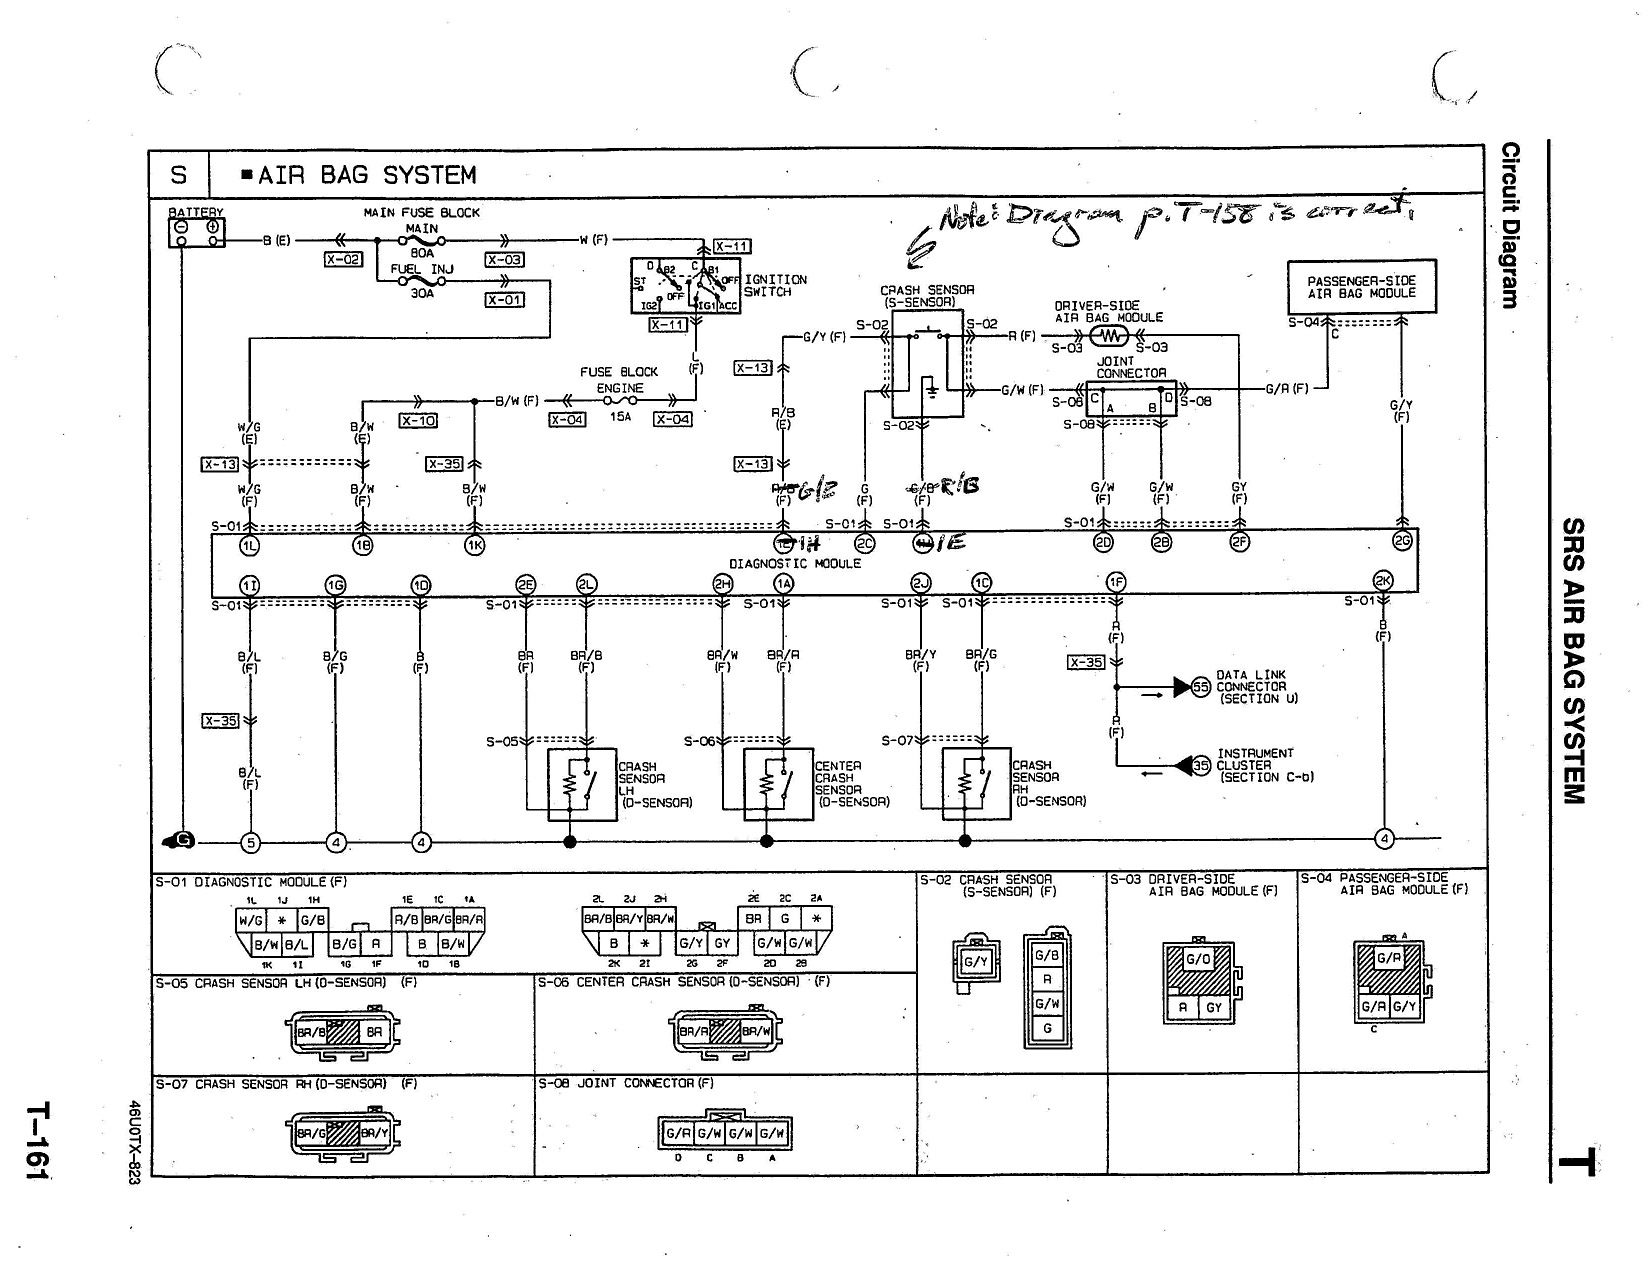 mx5 nc wiring diagram | 99 Mustang Speaker Wiring Diagram |  |